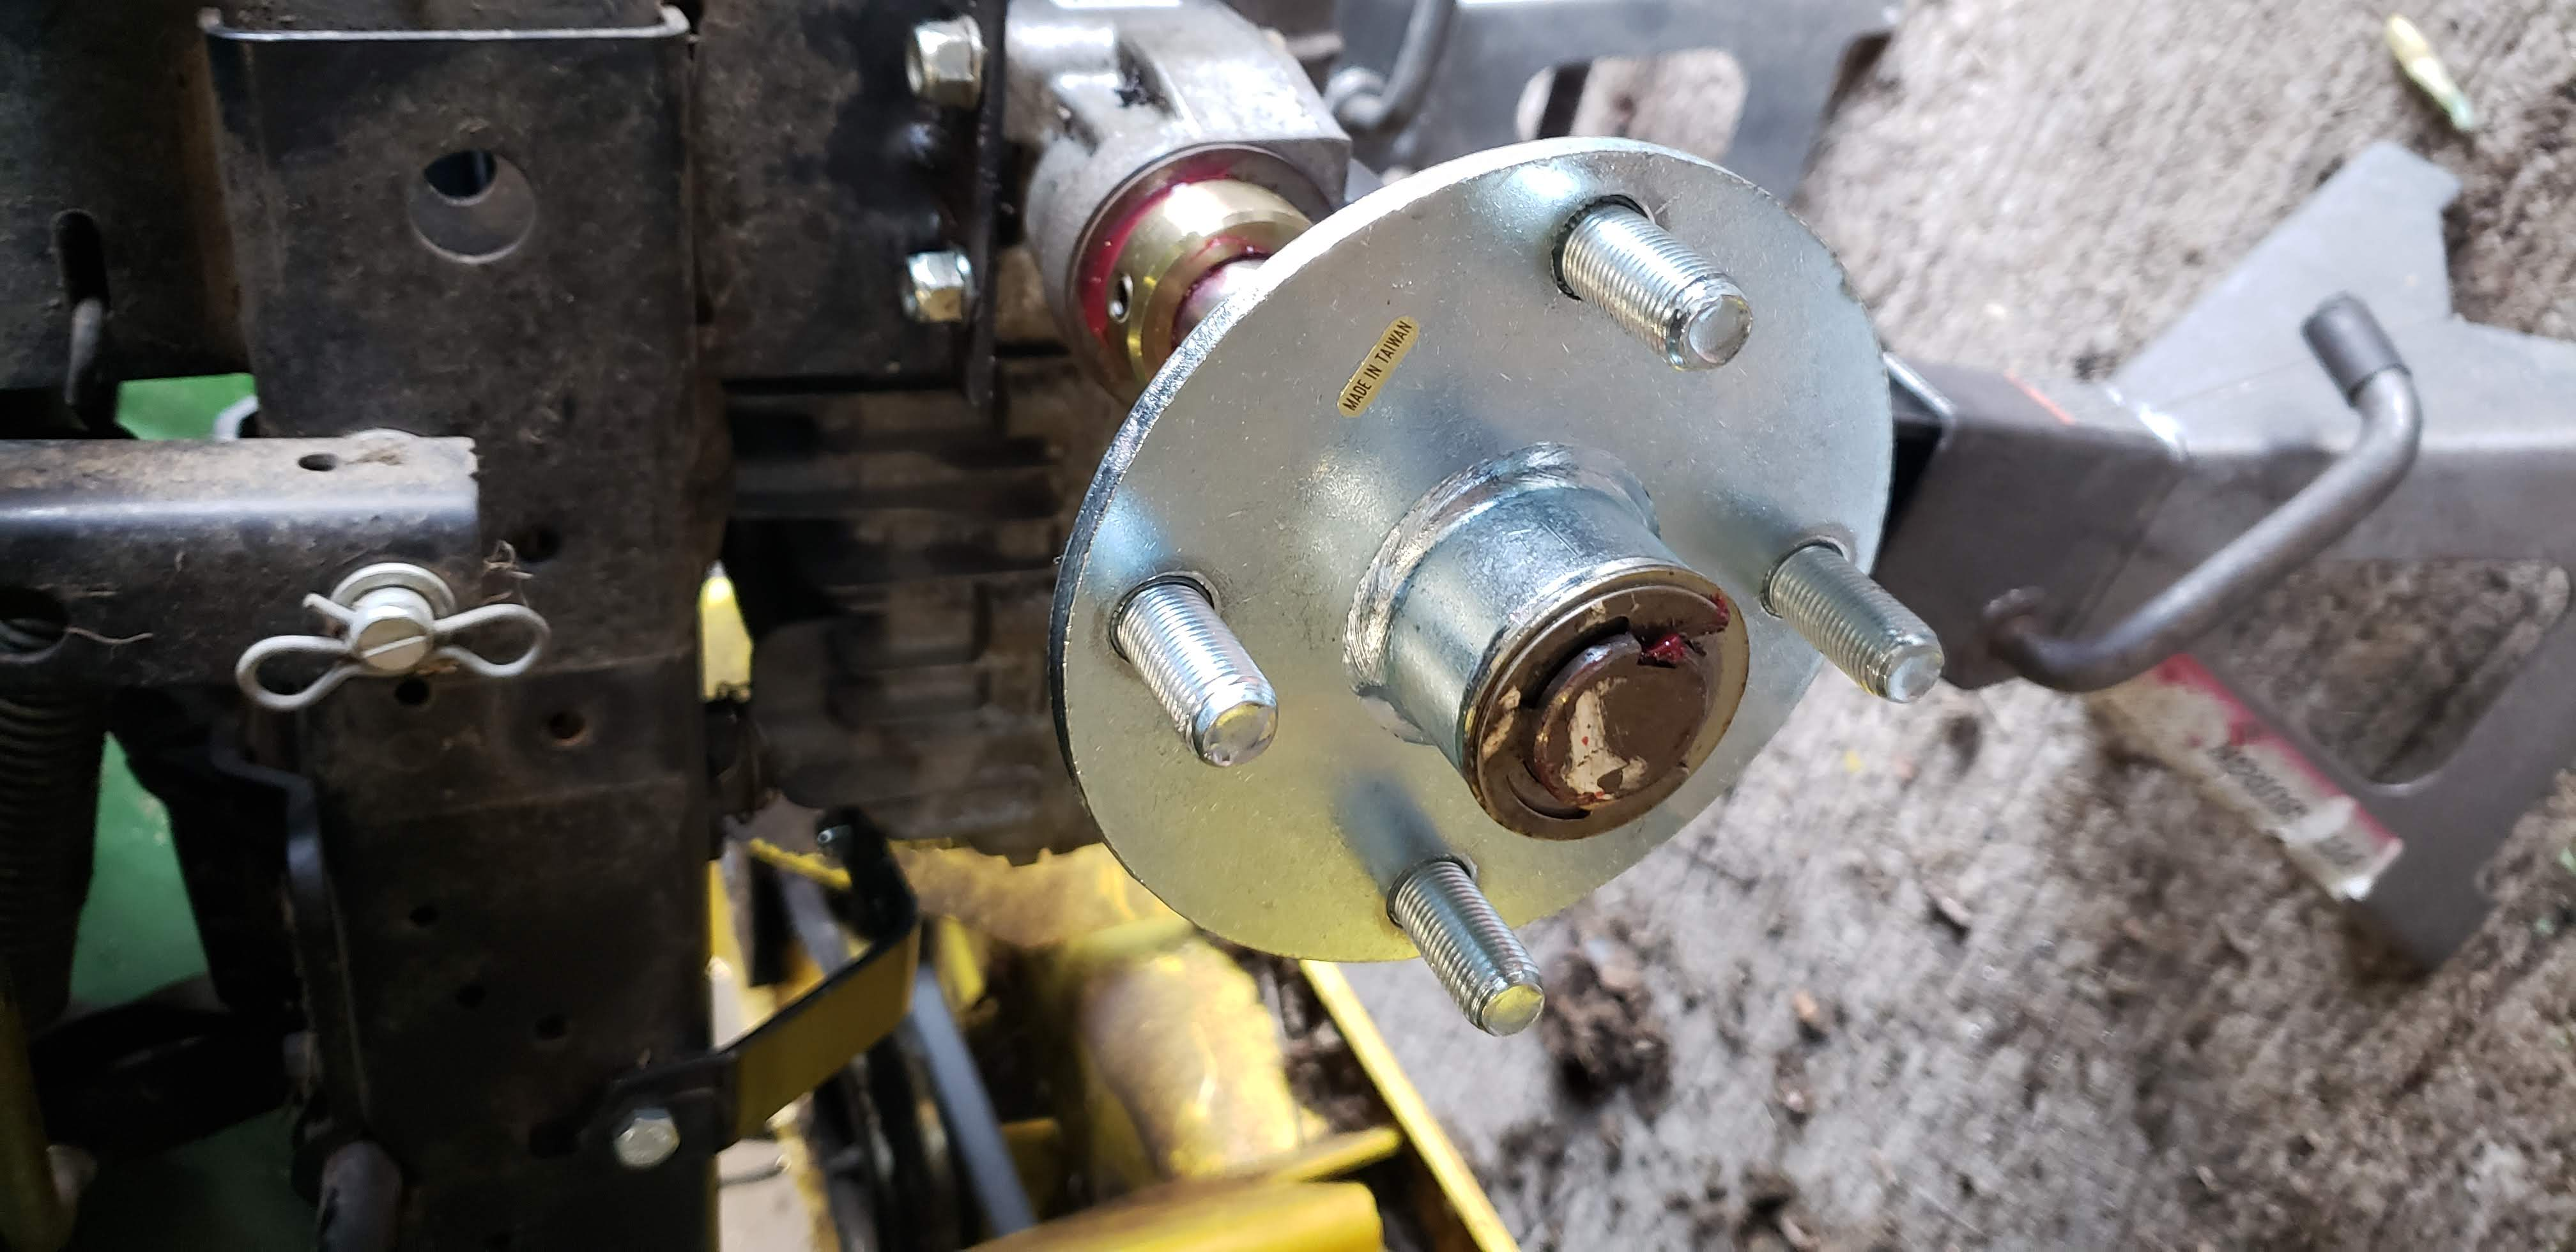 Replace K46 with K66 in D170 - MyTractorForum com - The Friendliest